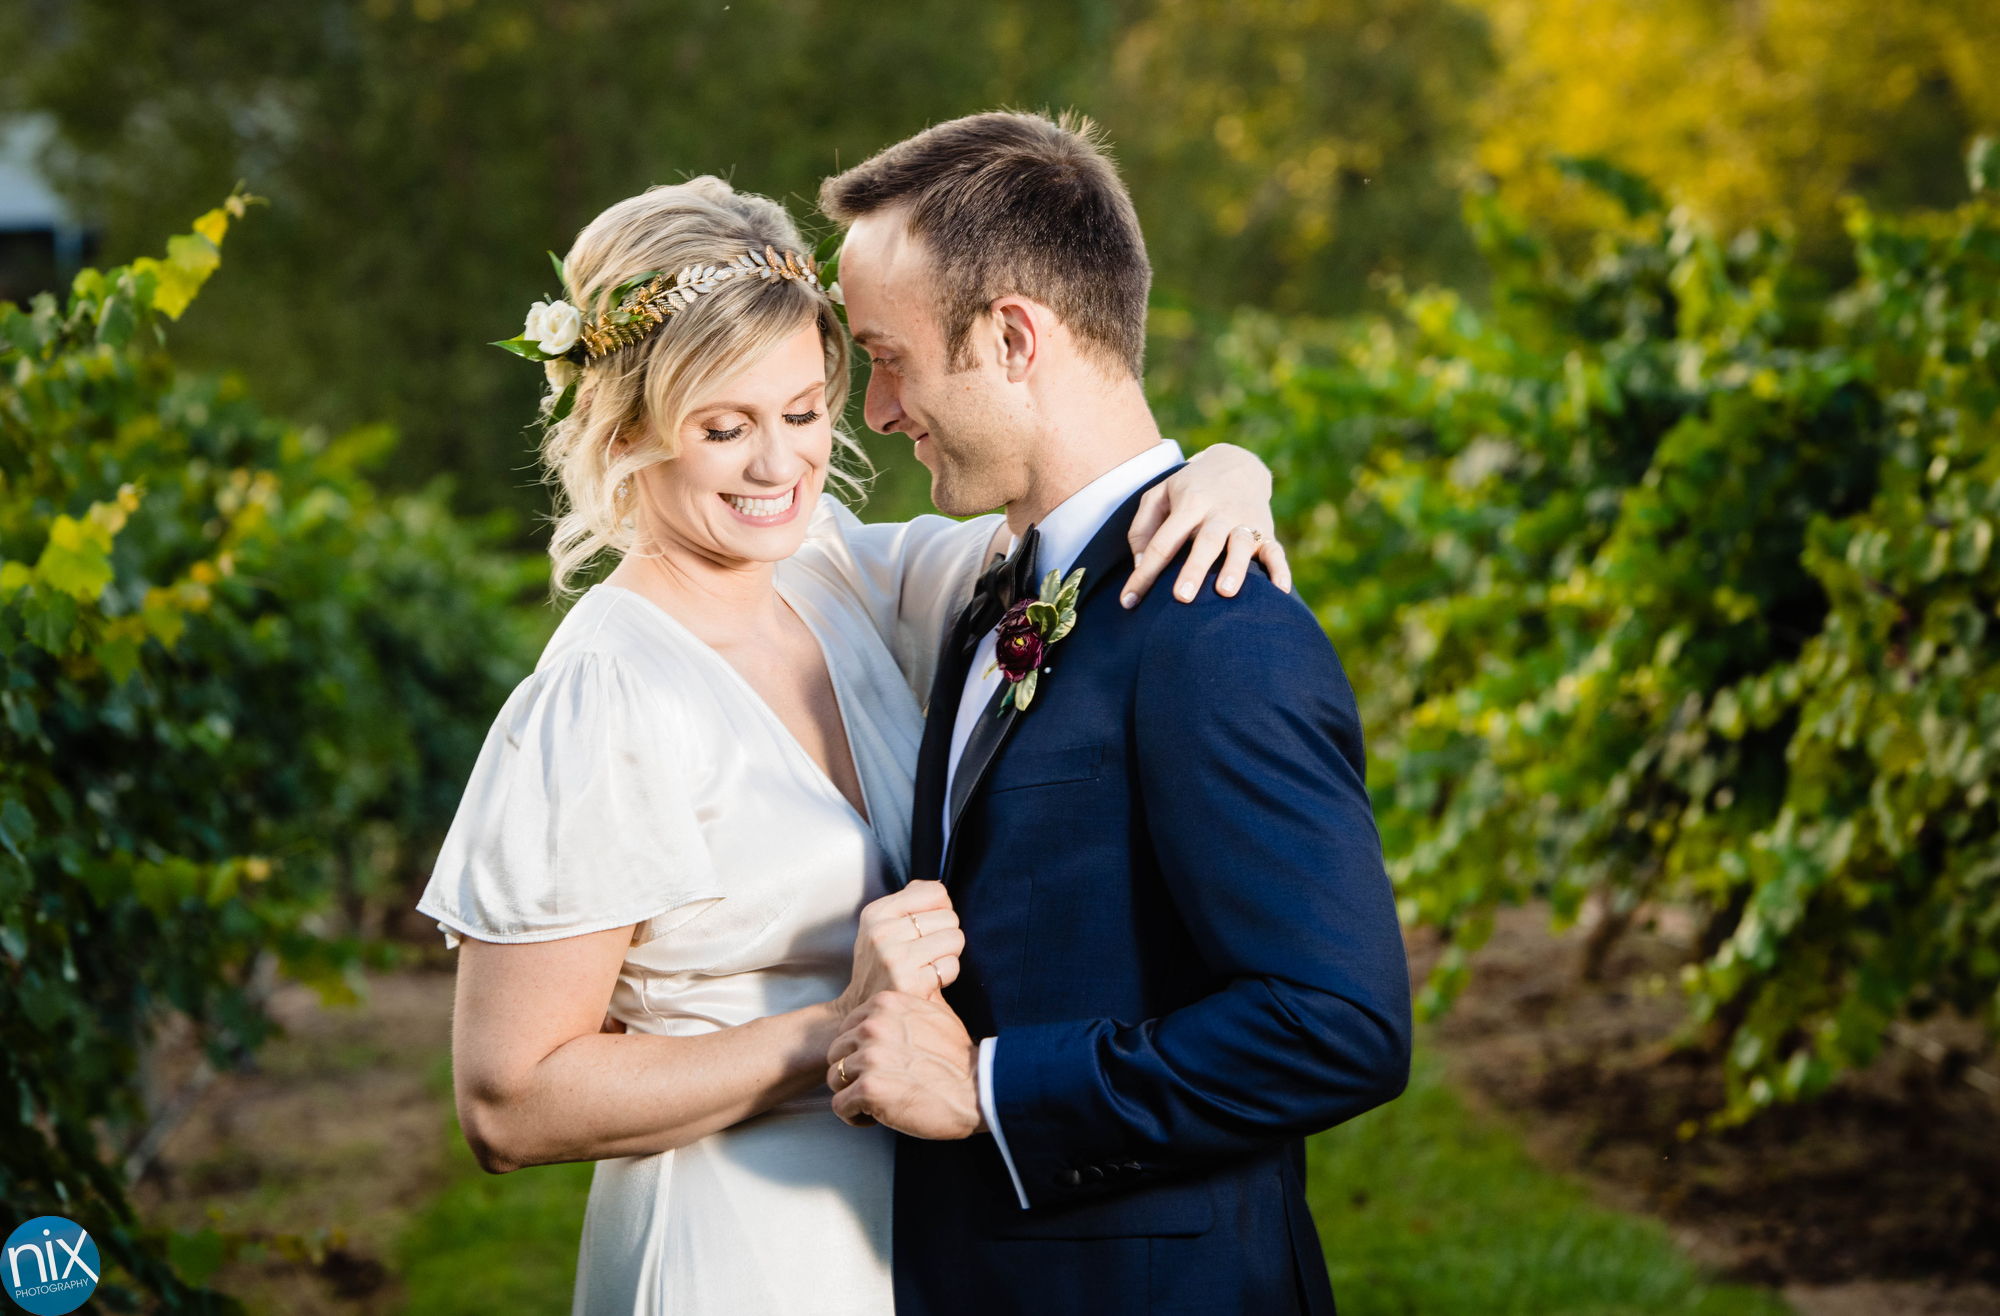 A Place in the Vineyards bride and groom .JPG